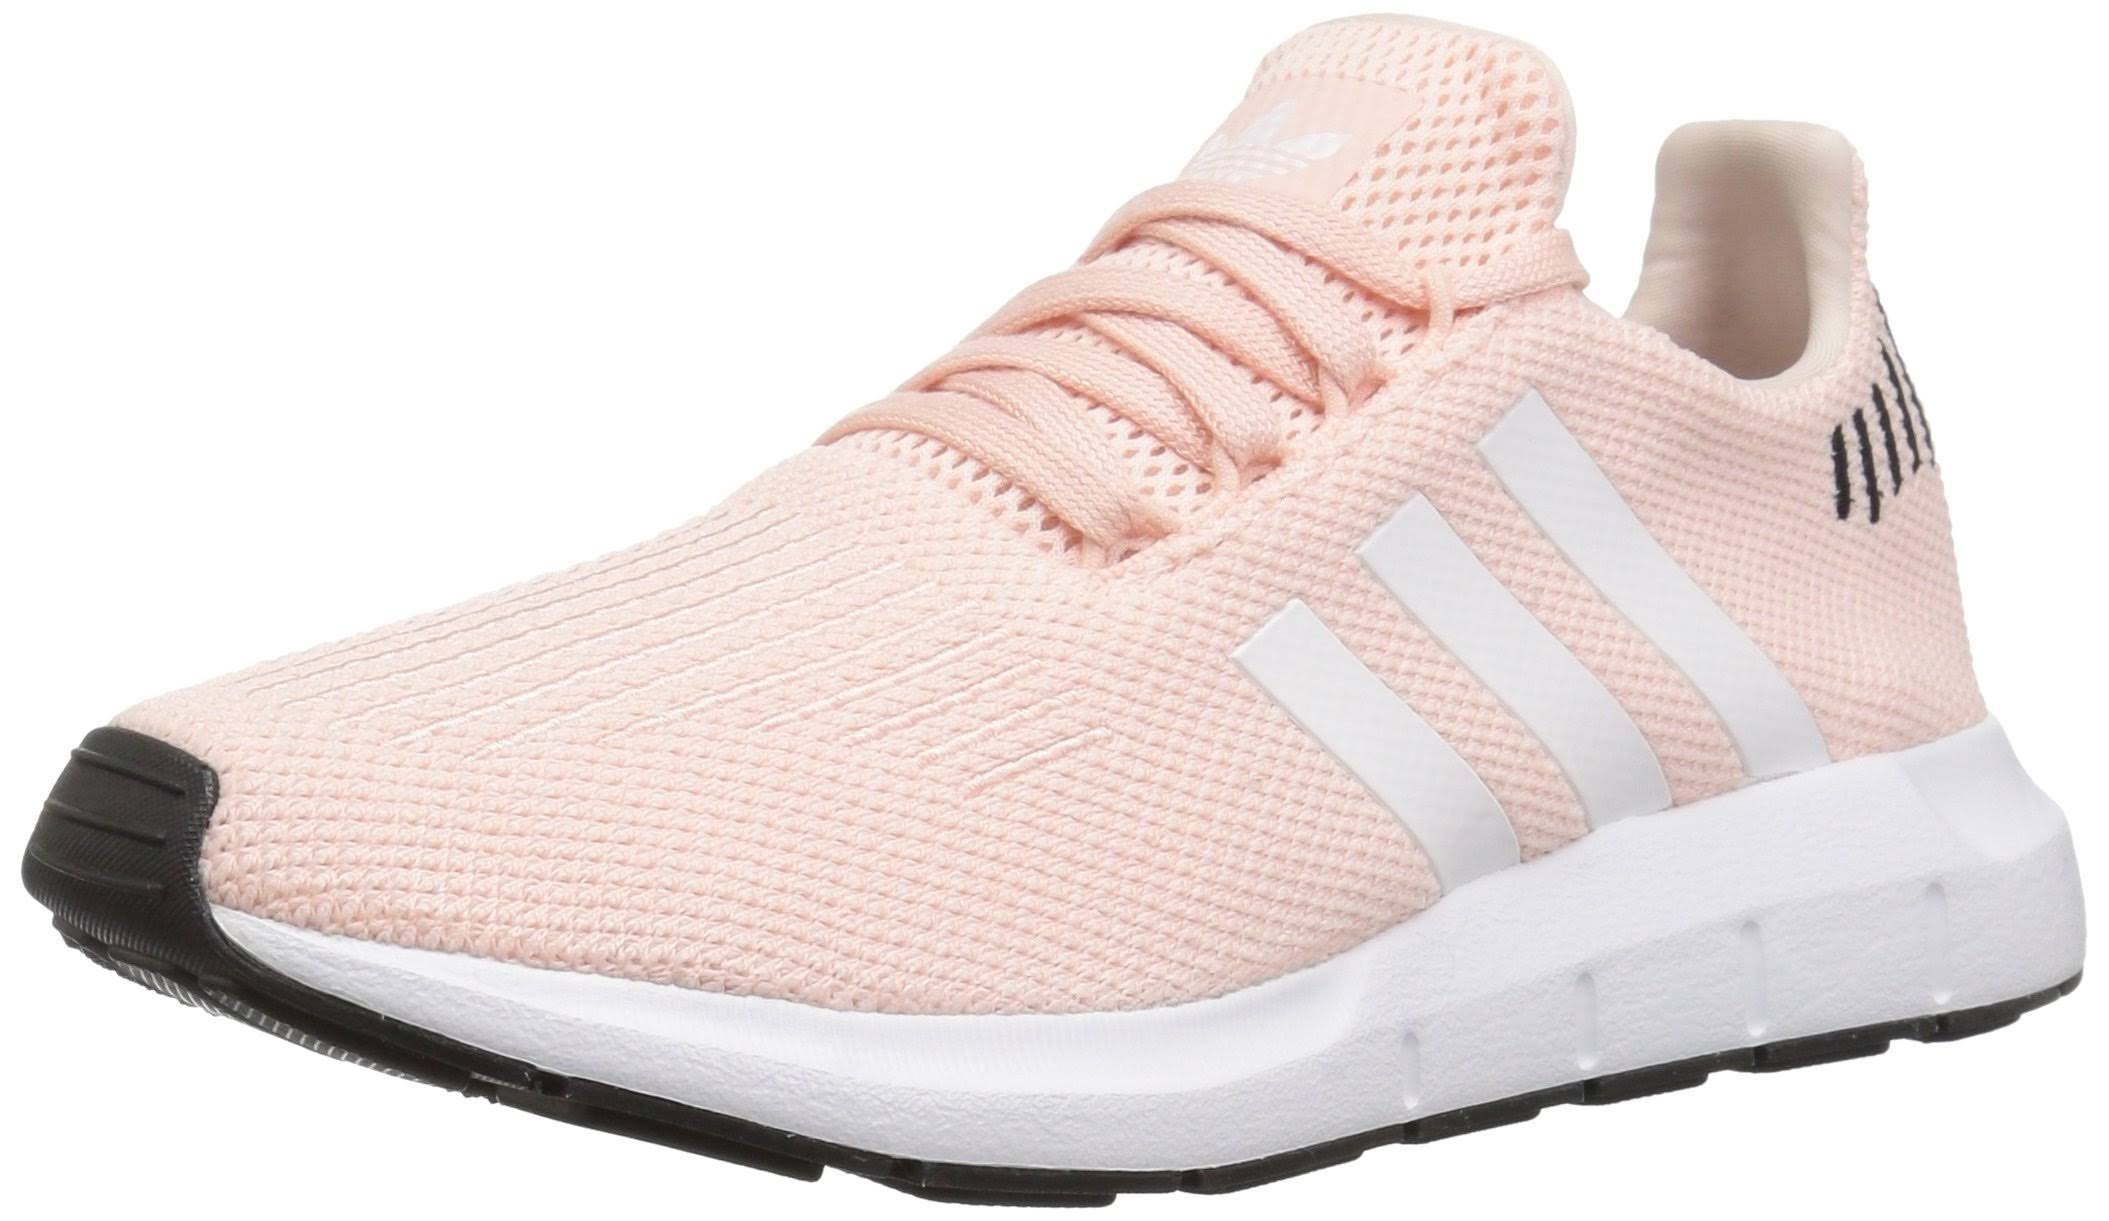 Swift 5 Shoes9 Pink Pinkwhiteblack Adidas Run Ice 8PknwO0